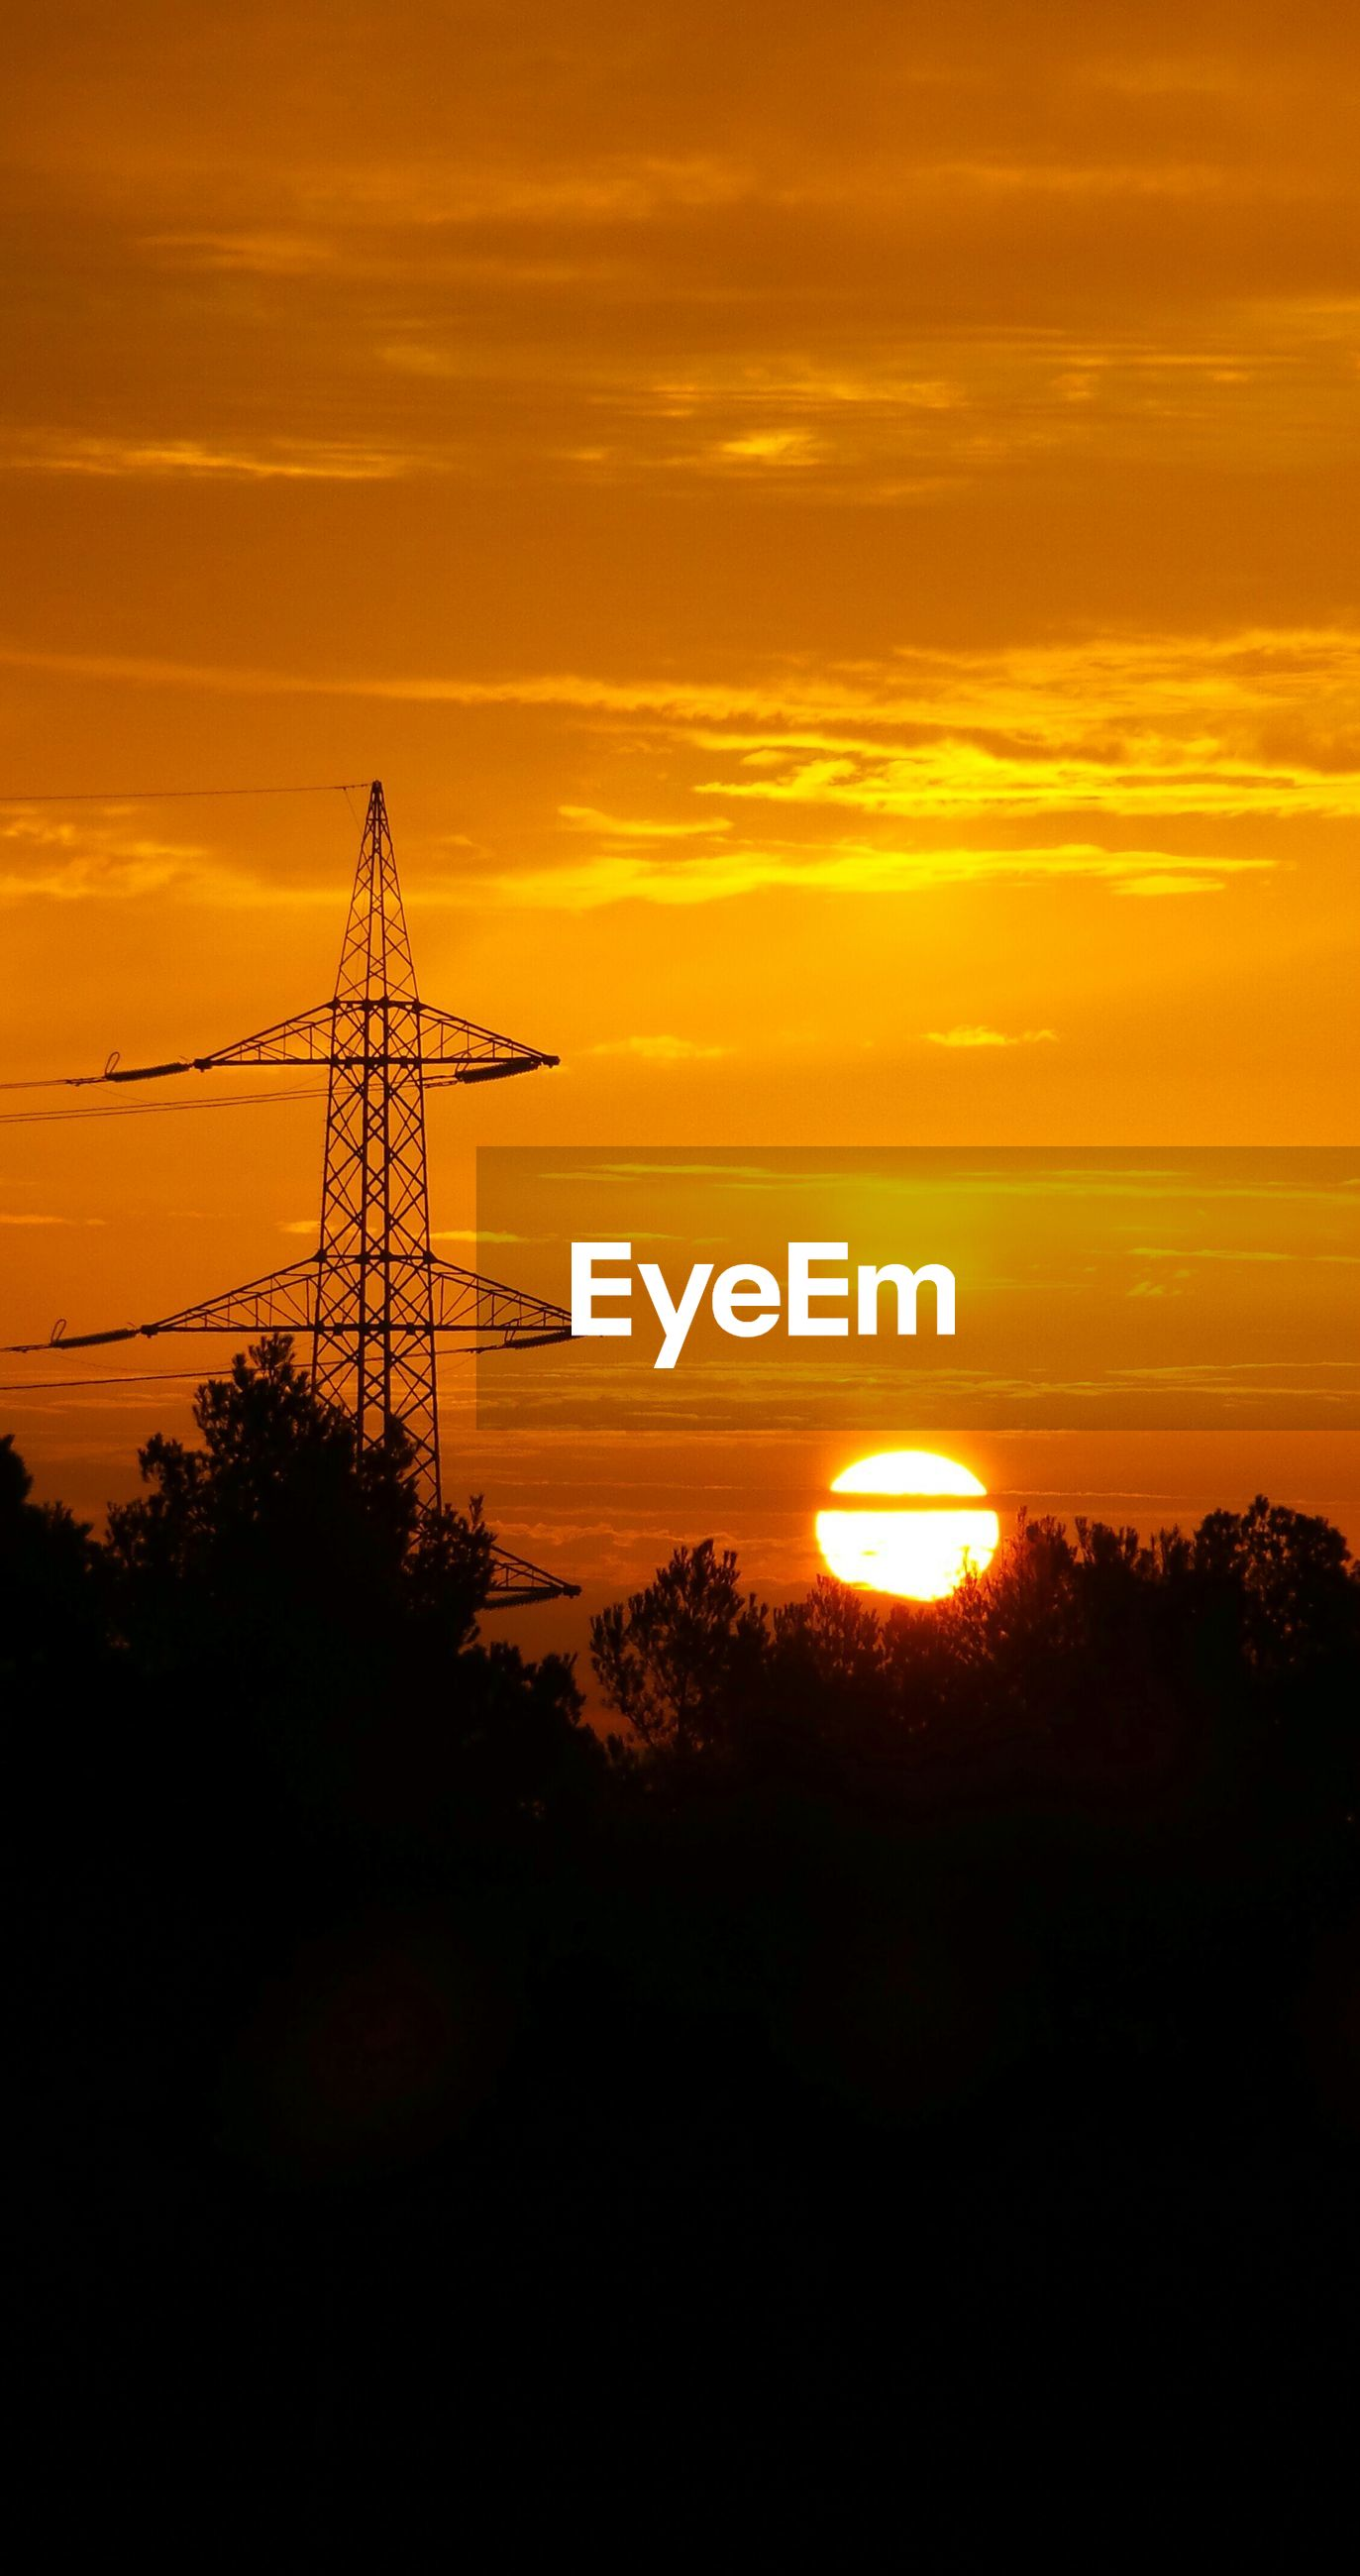 Low angle view of silhouette electricity pylon by trees against orange sky